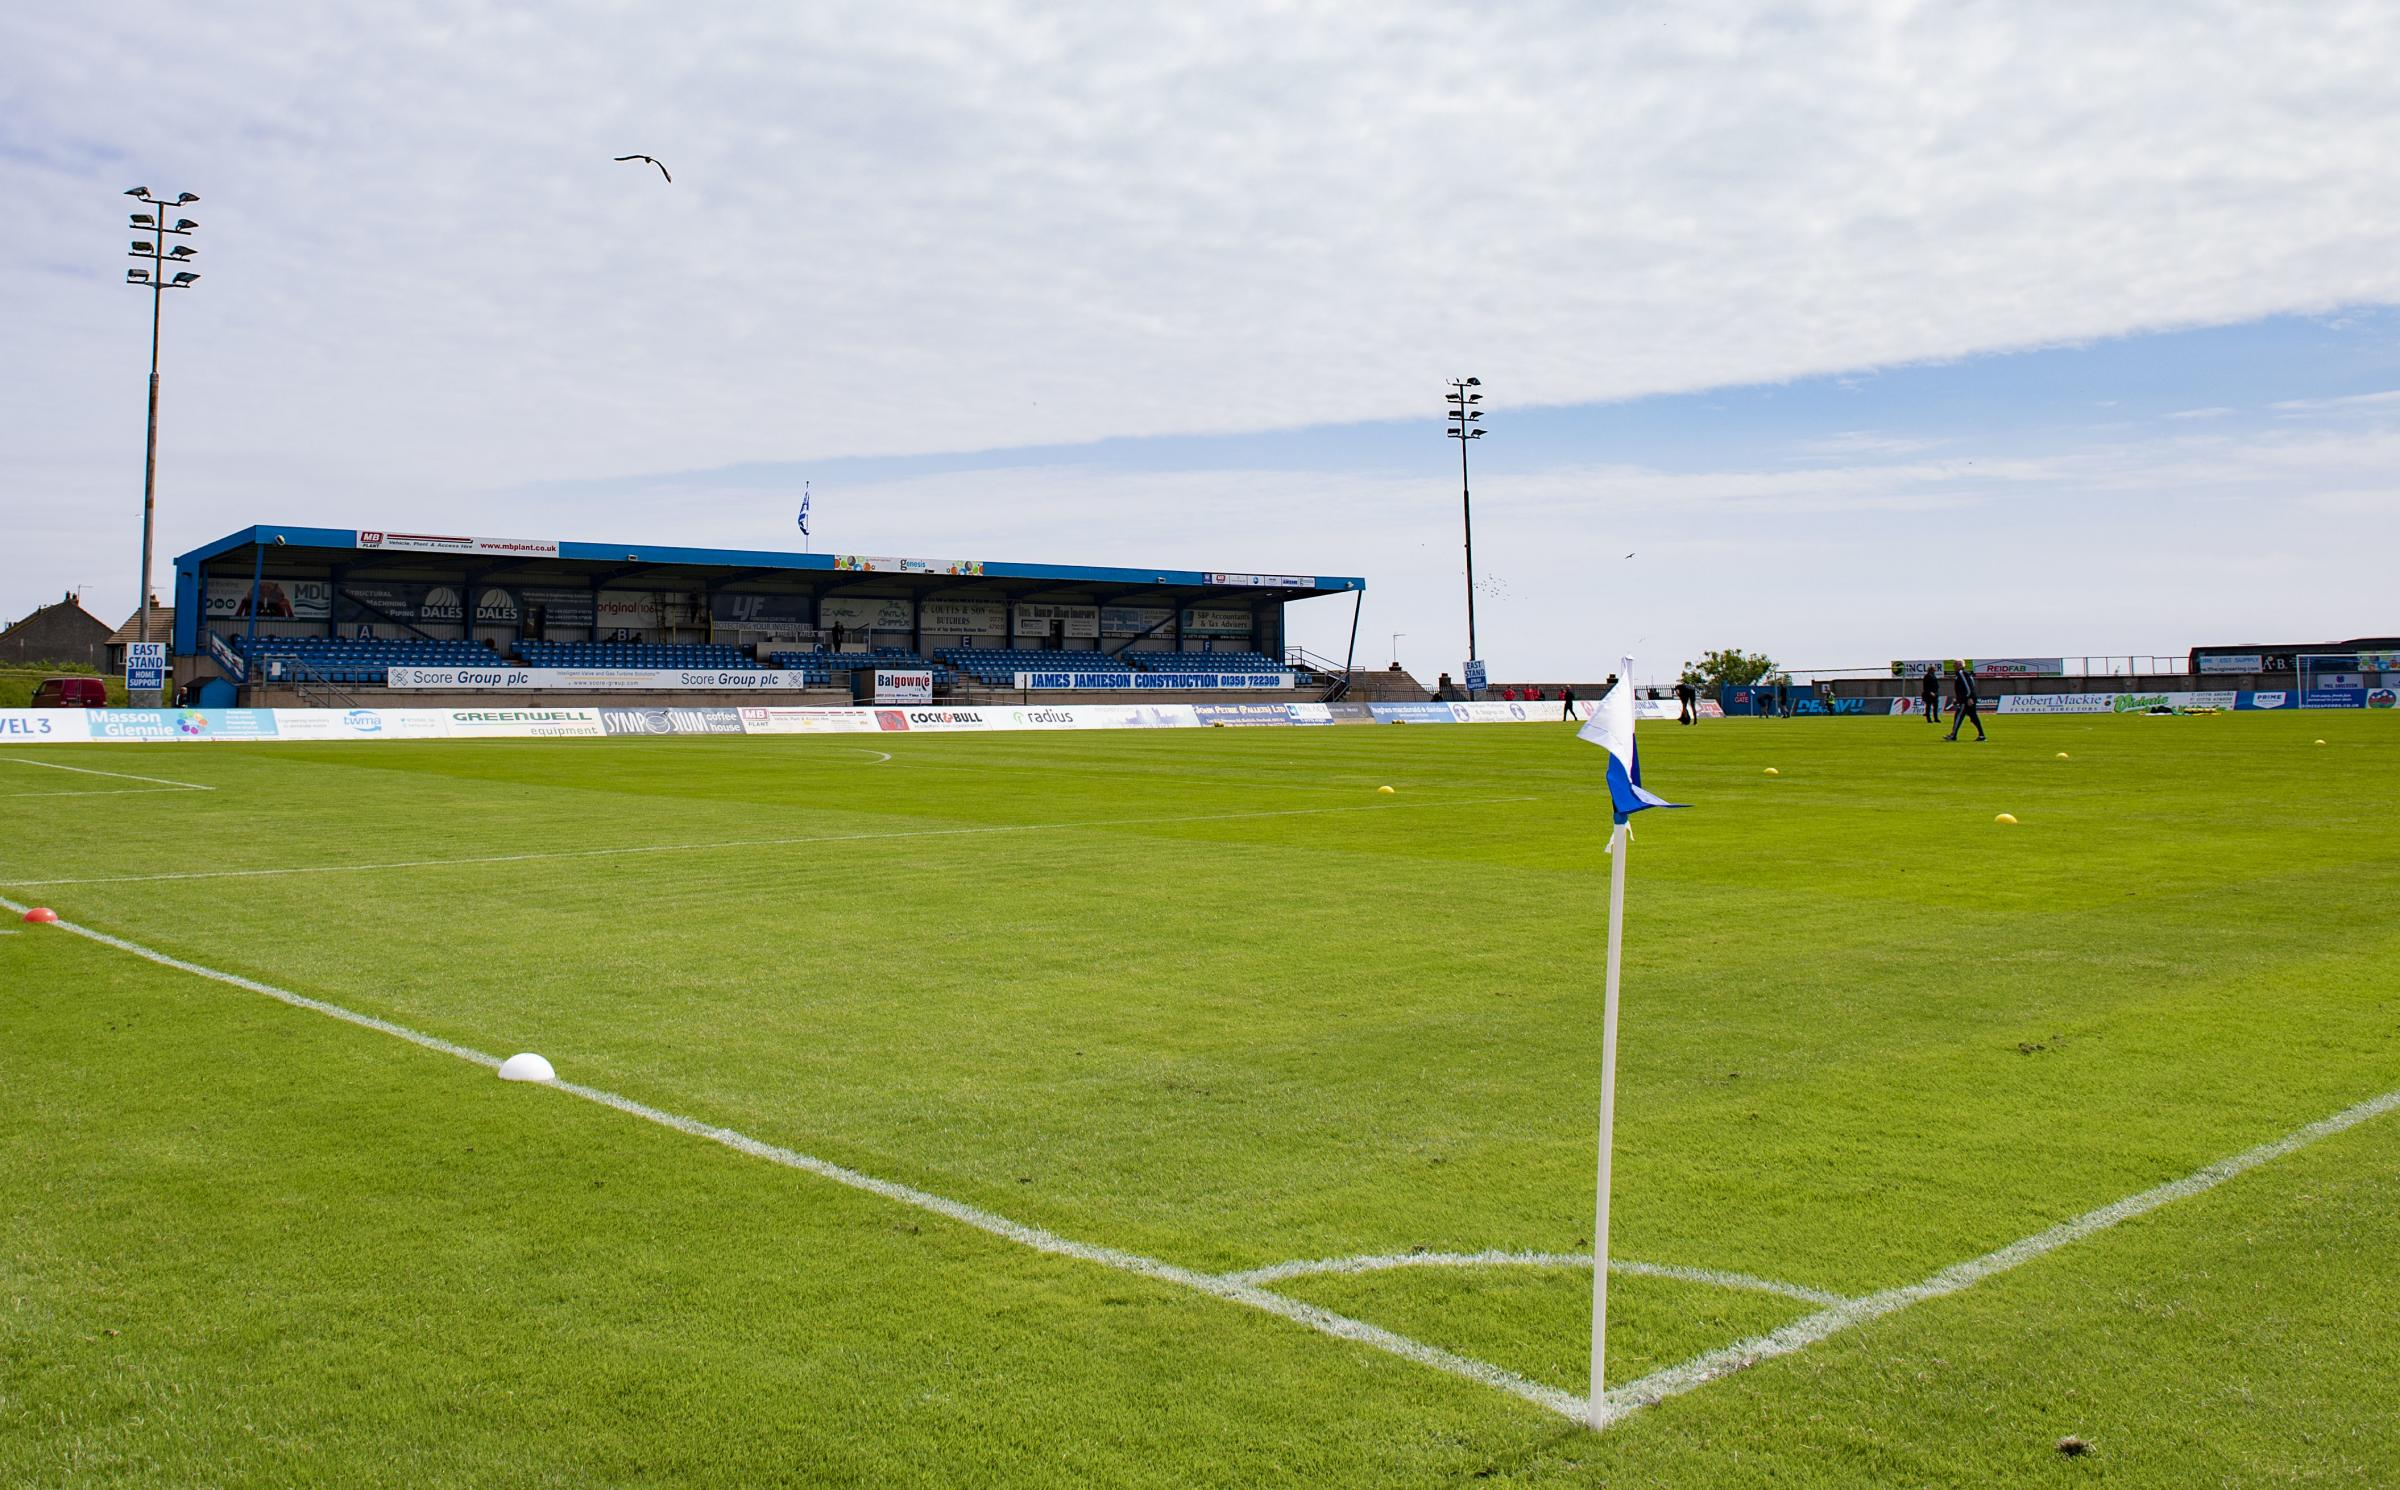 Peterhead 2-0 Alloa: Opening day loss for the Wasps